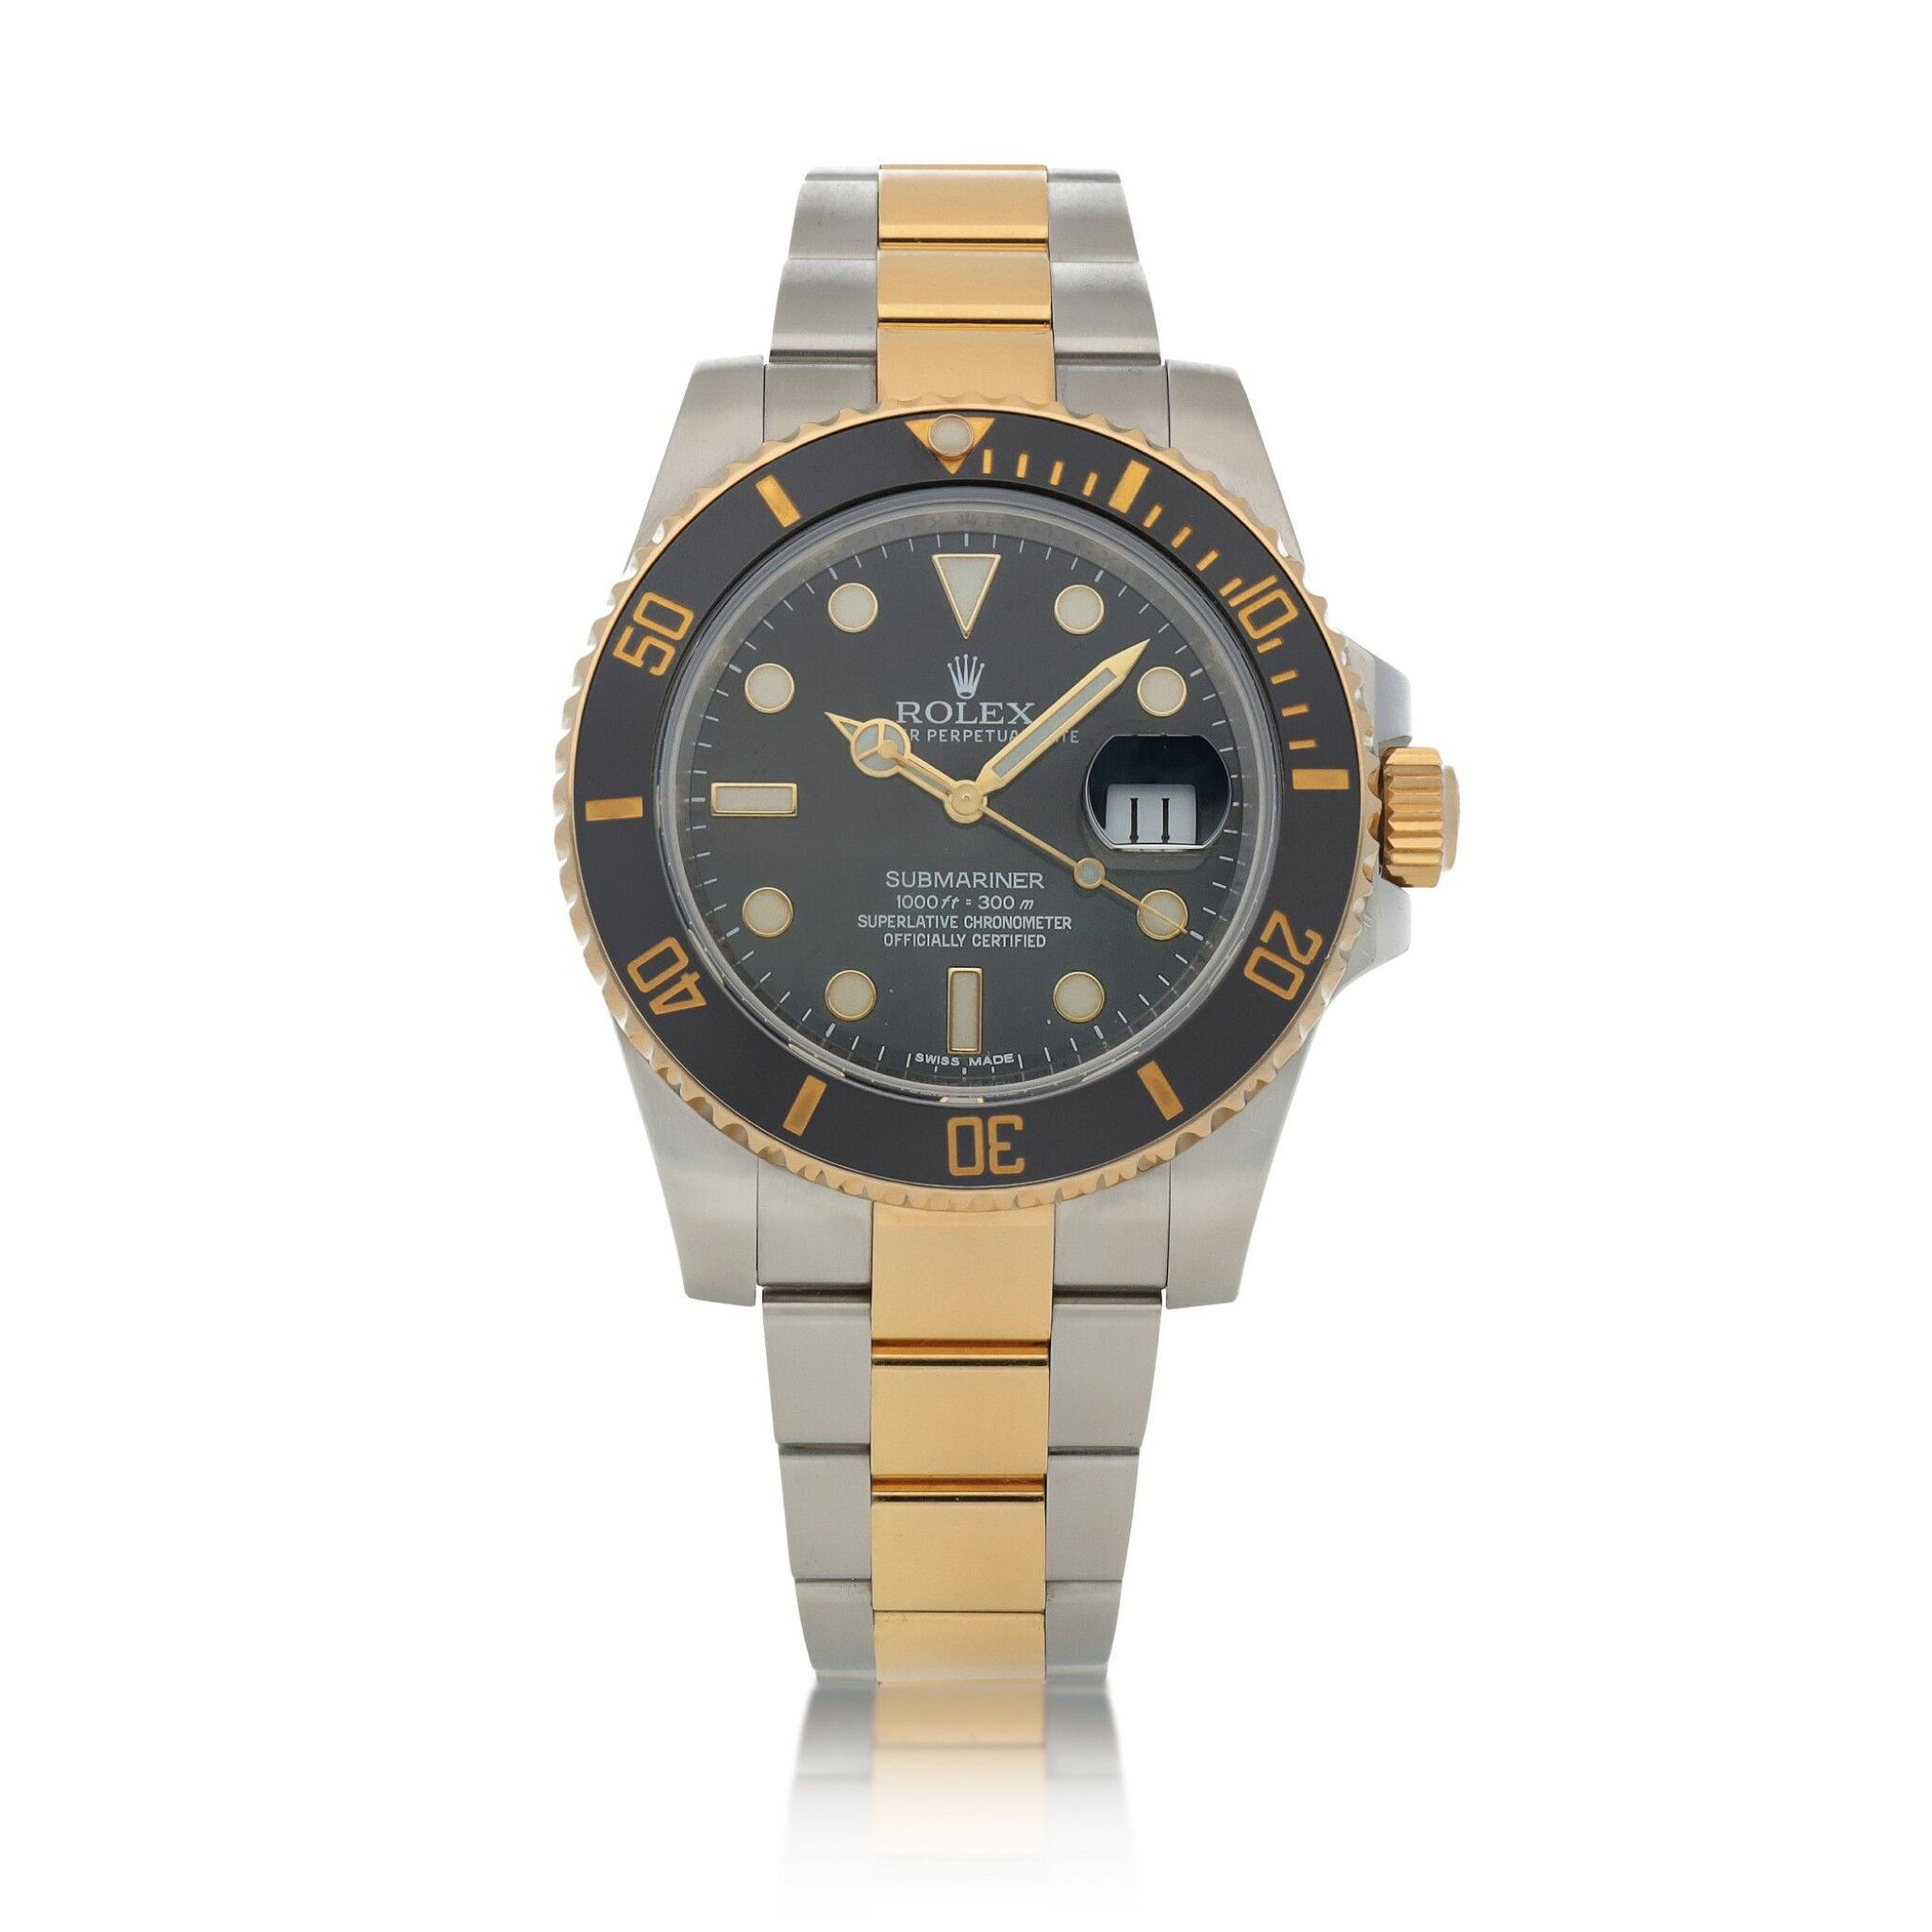 View full screen - View 1 of Lot 416. Submariner, Ref. 116613LN Stainless steel and yellow gold wristwatch with date and bracelet Circa 2015 | 勞力士 116613LN型號「Submariner」精鋼及黃金鍊帶腕錶備日期顯示,年份約2015.